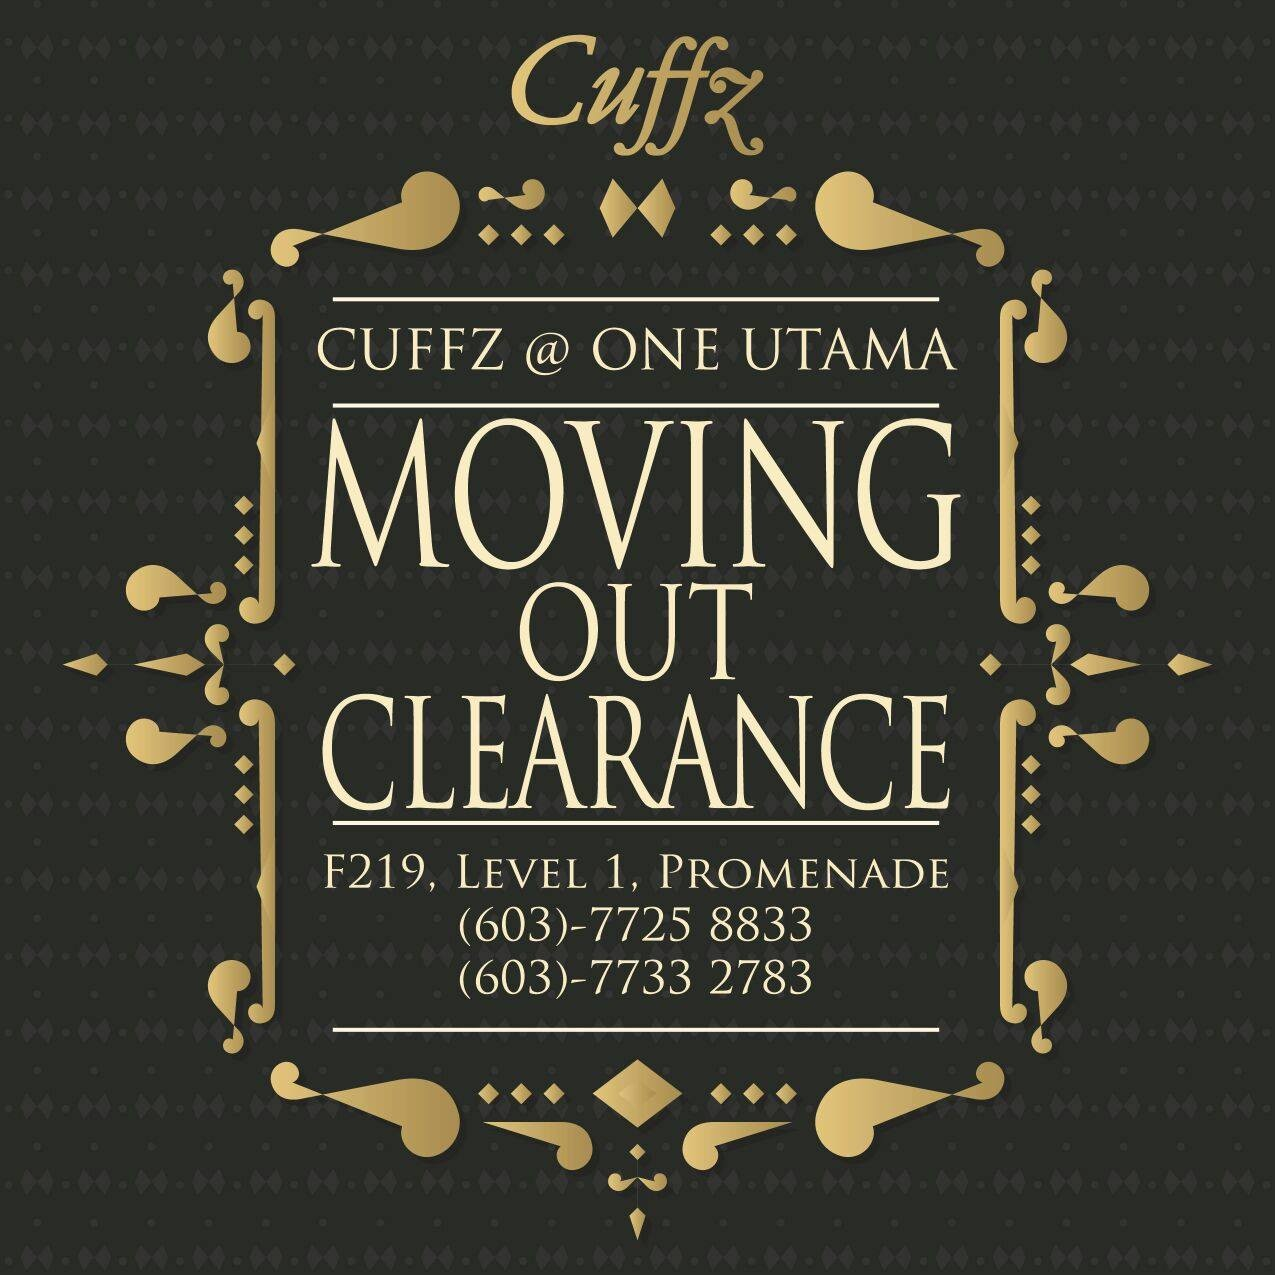 91795569f25a40 Cuffz 1 Utama Moving Out Clearance